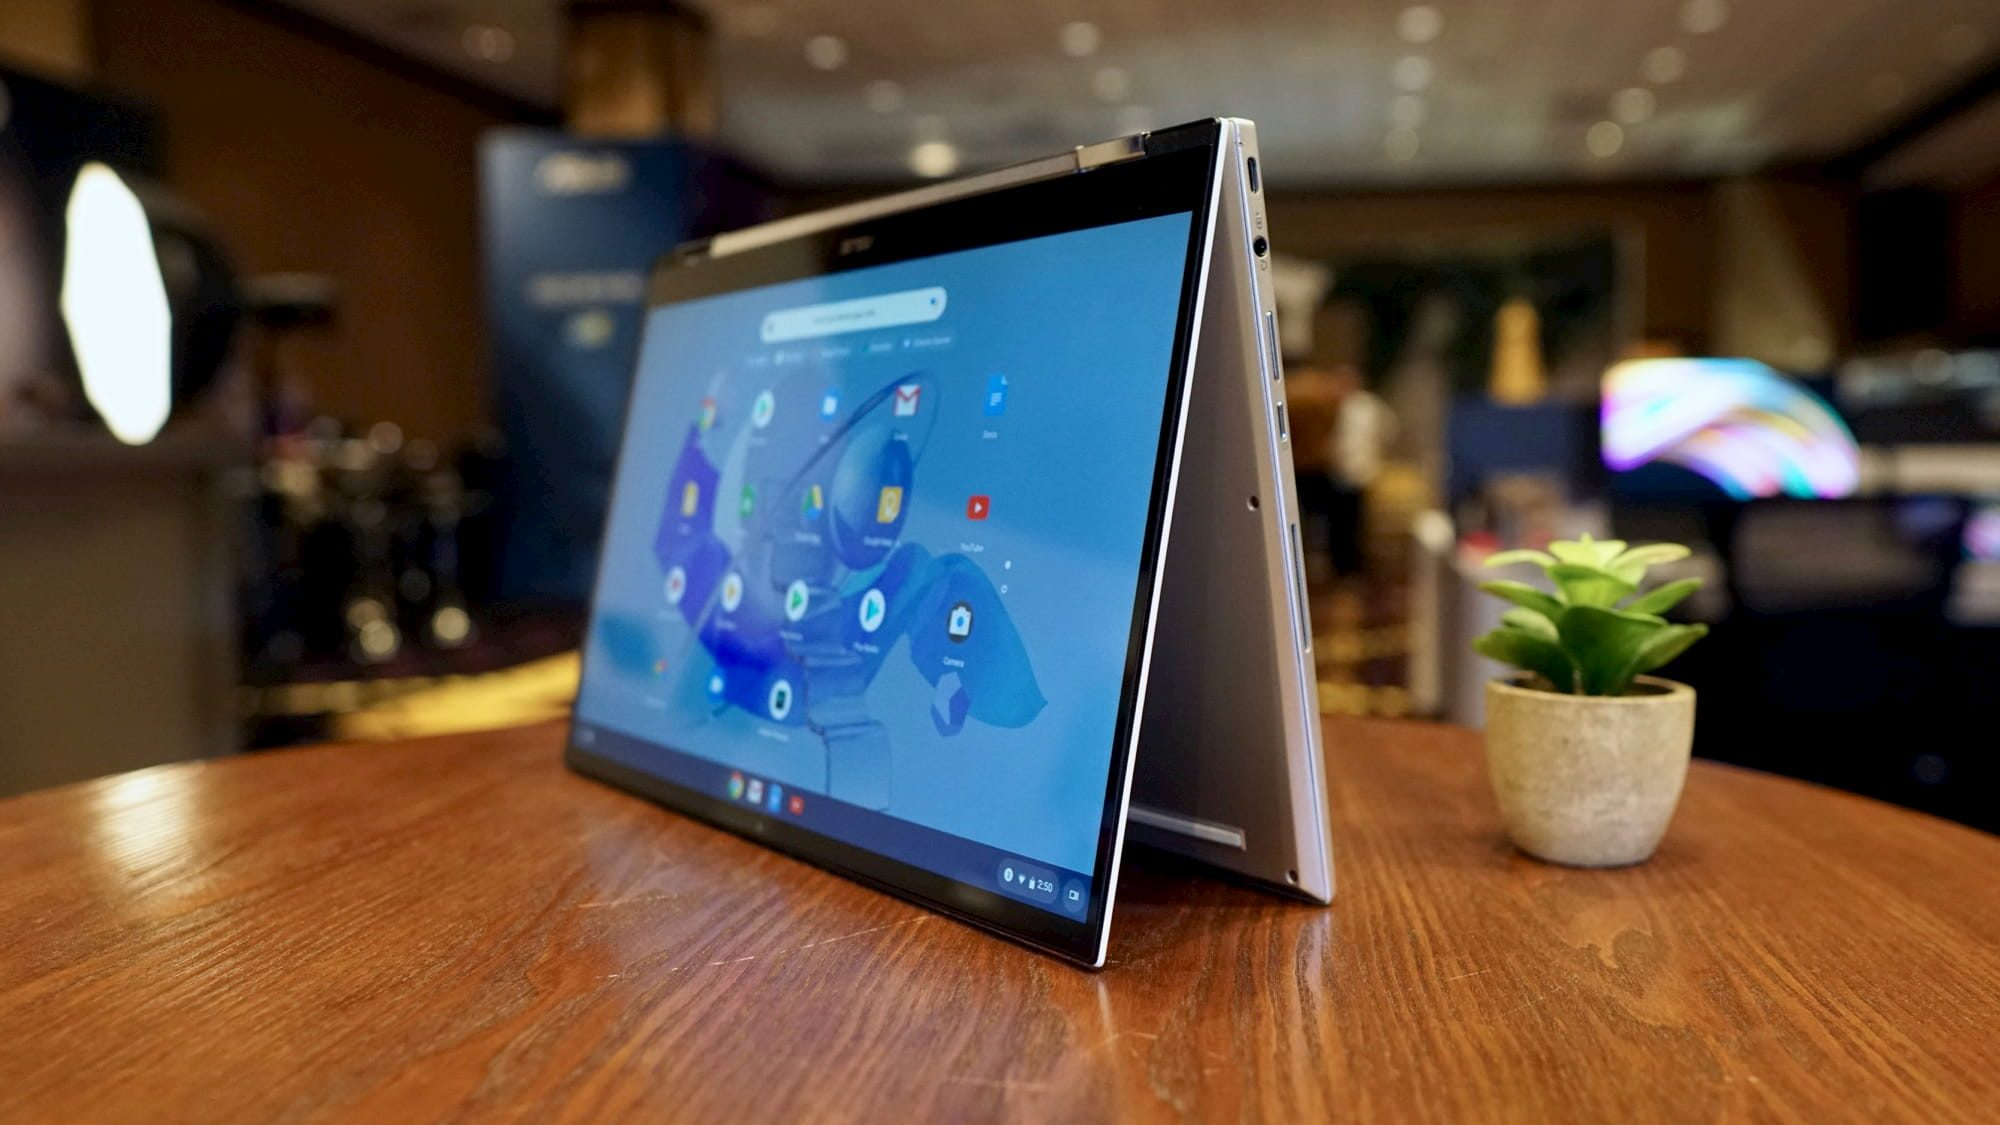 Citing delays, ASUS now expects the Chromebook Flip C436 to be available mid-March